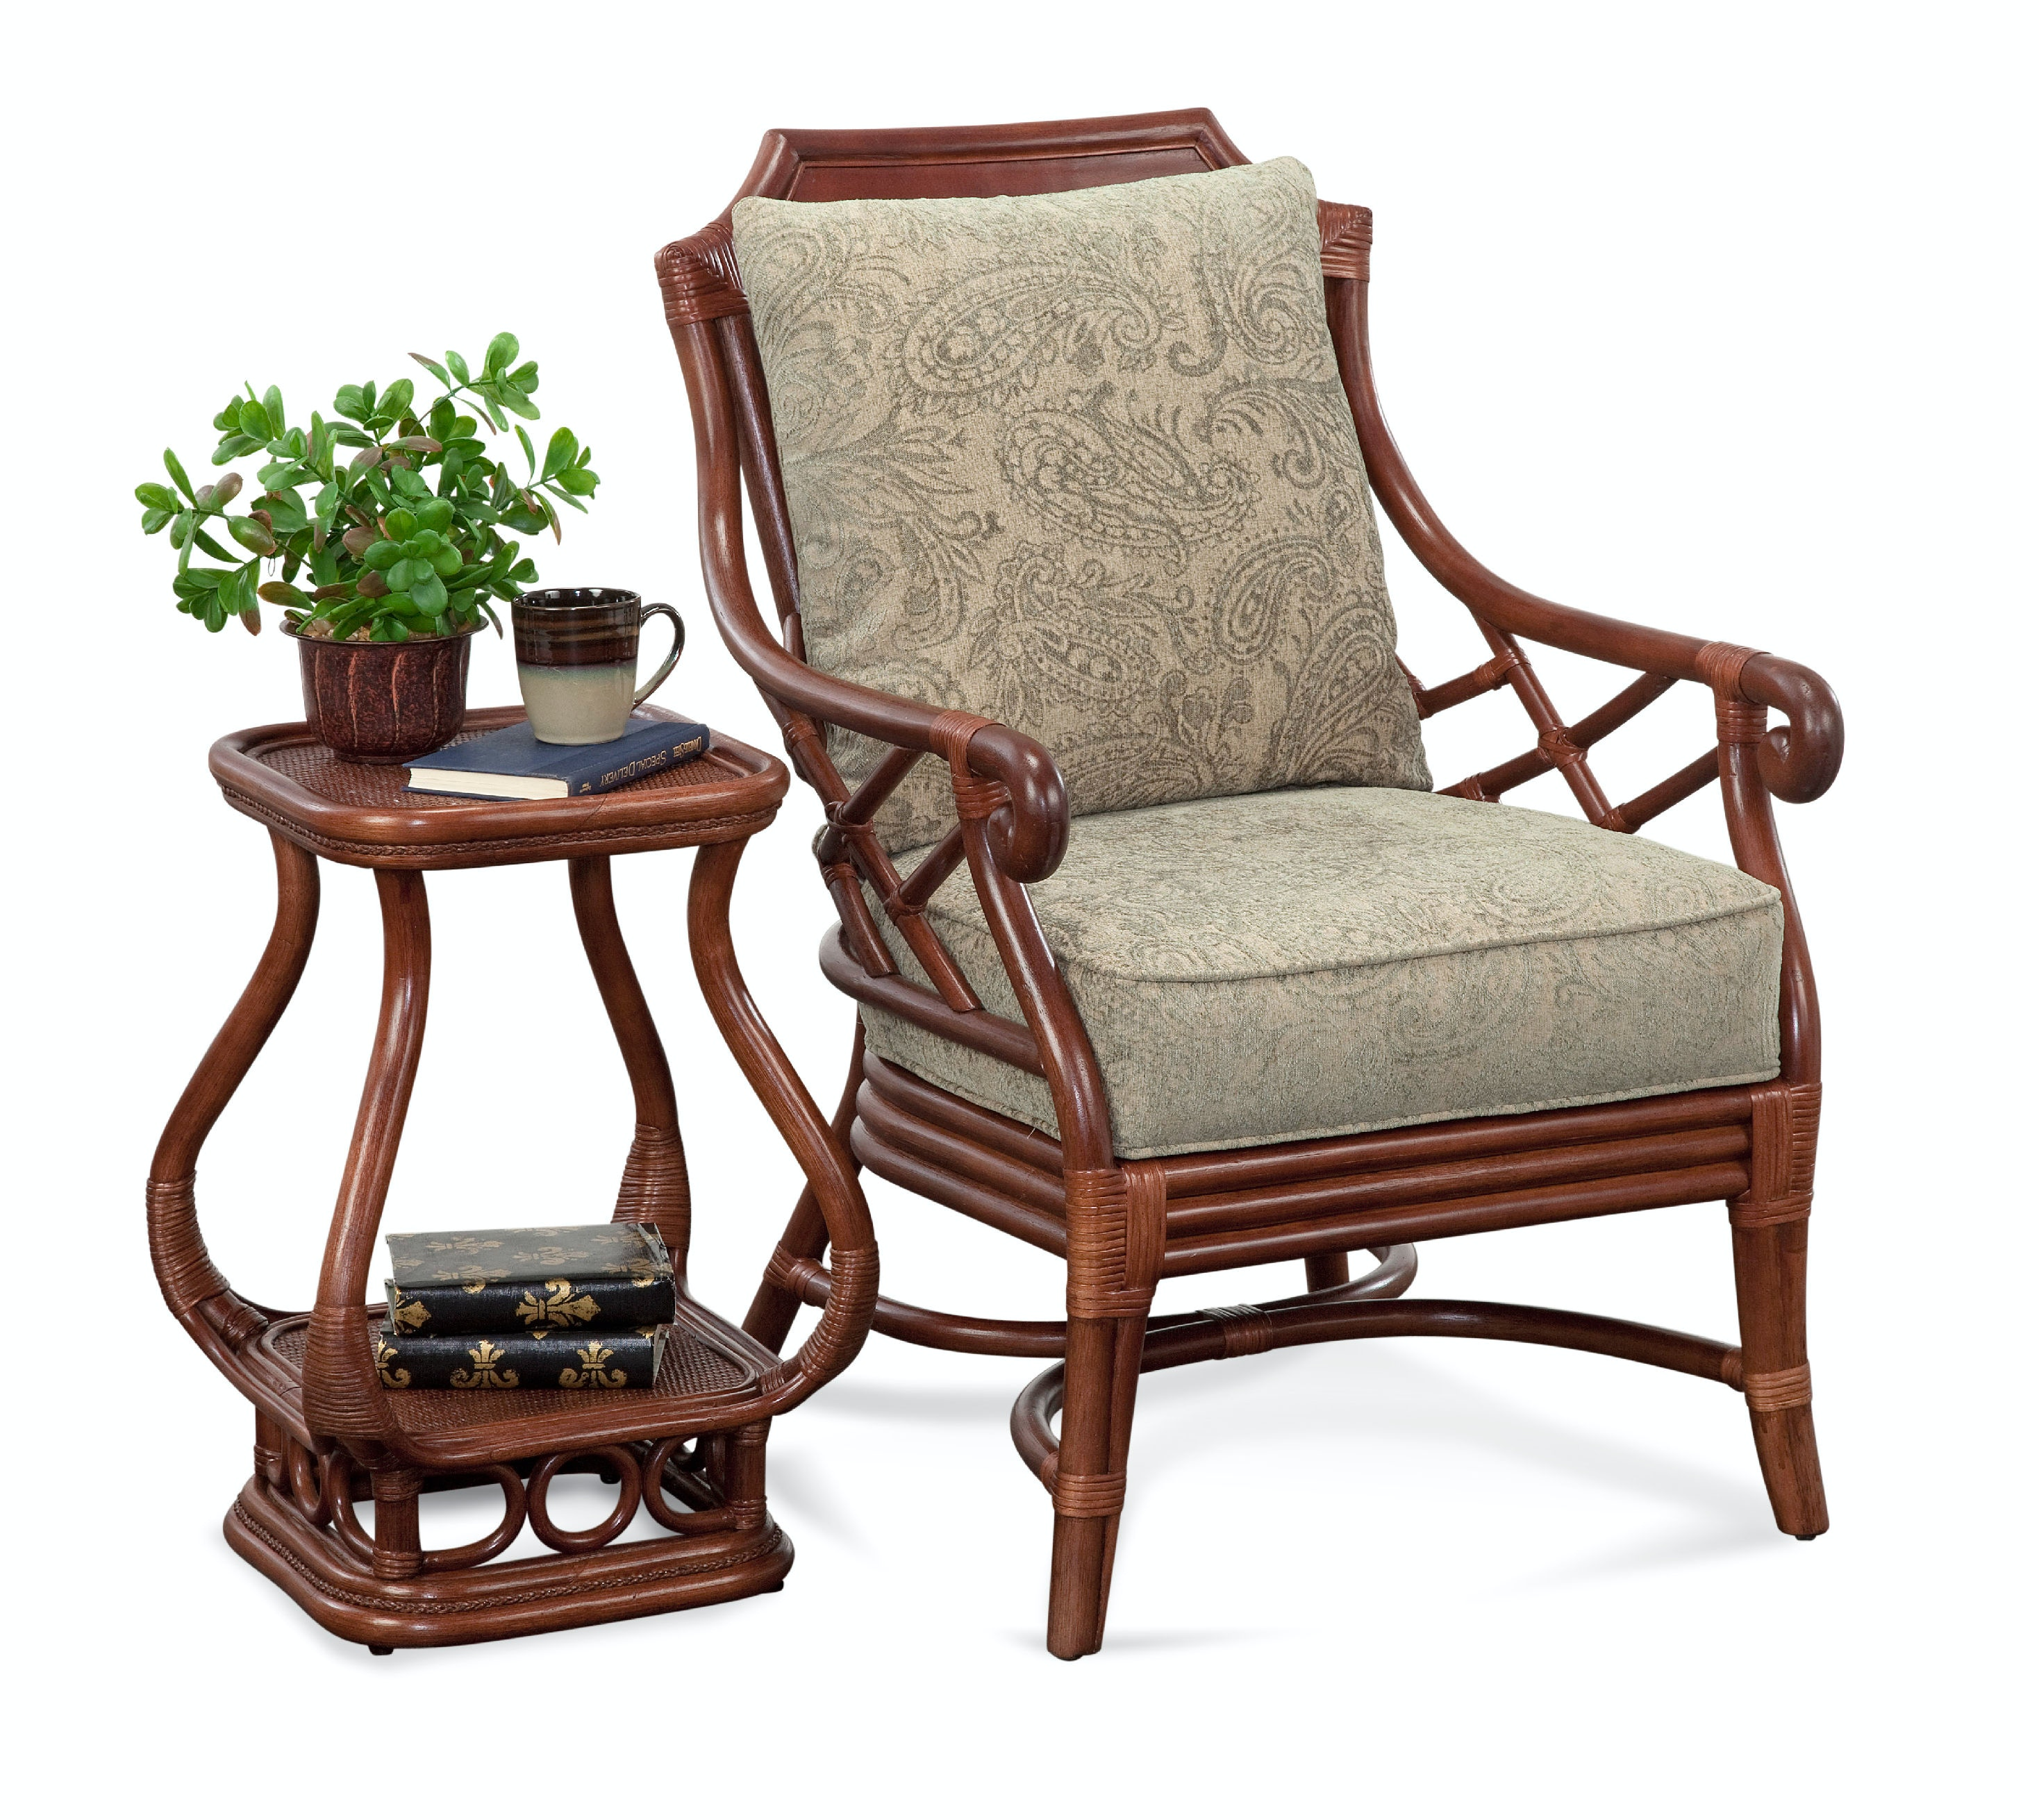 Braxton Culler Living Room Accent Chair 1030-001 - Haynes Brothers - Volusia County